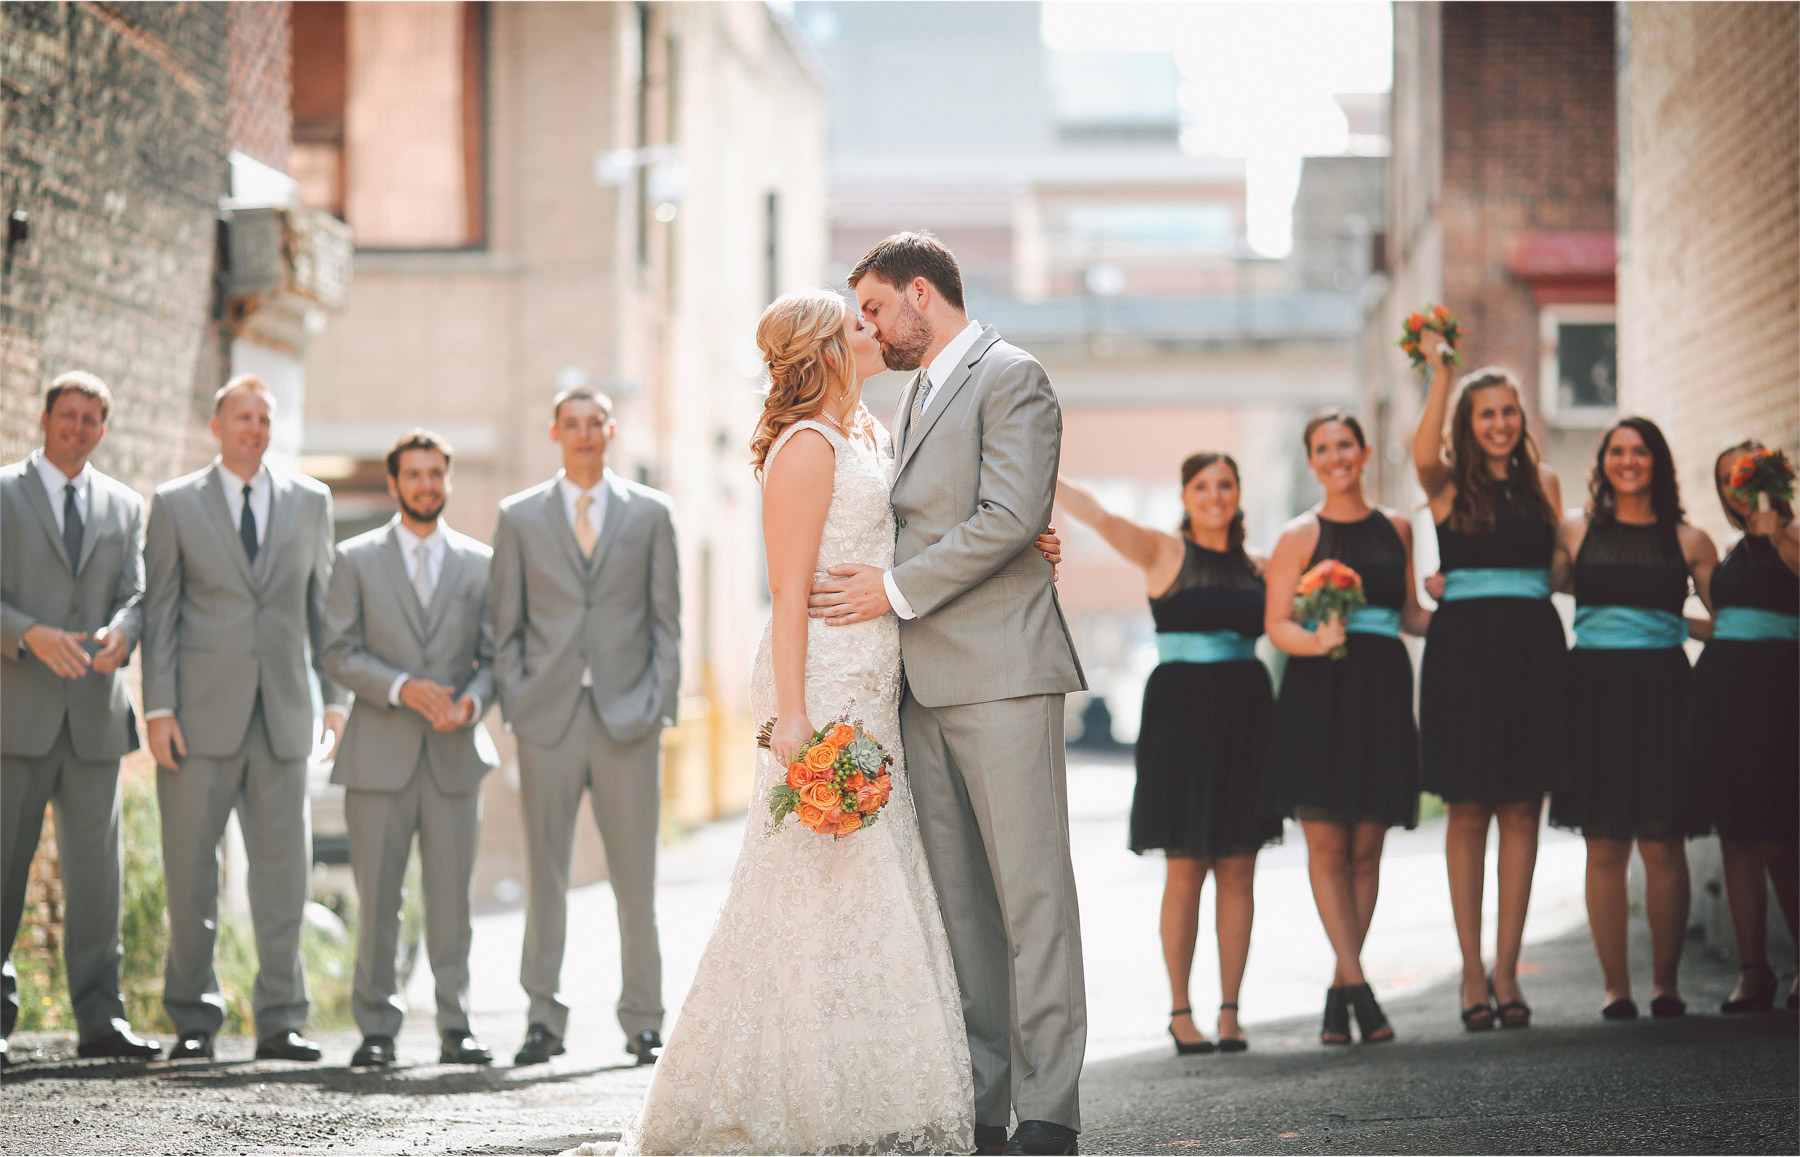 07-Duluth-Minnesota-Wedding-Photographer-by-Andrew-Vick-Photography-Summer-Bride-Groom-Bridal-Party-Bridesmaids-Groomsmen-Flowers-Kiss-Vintage-Katie-and-Andrew.jpg